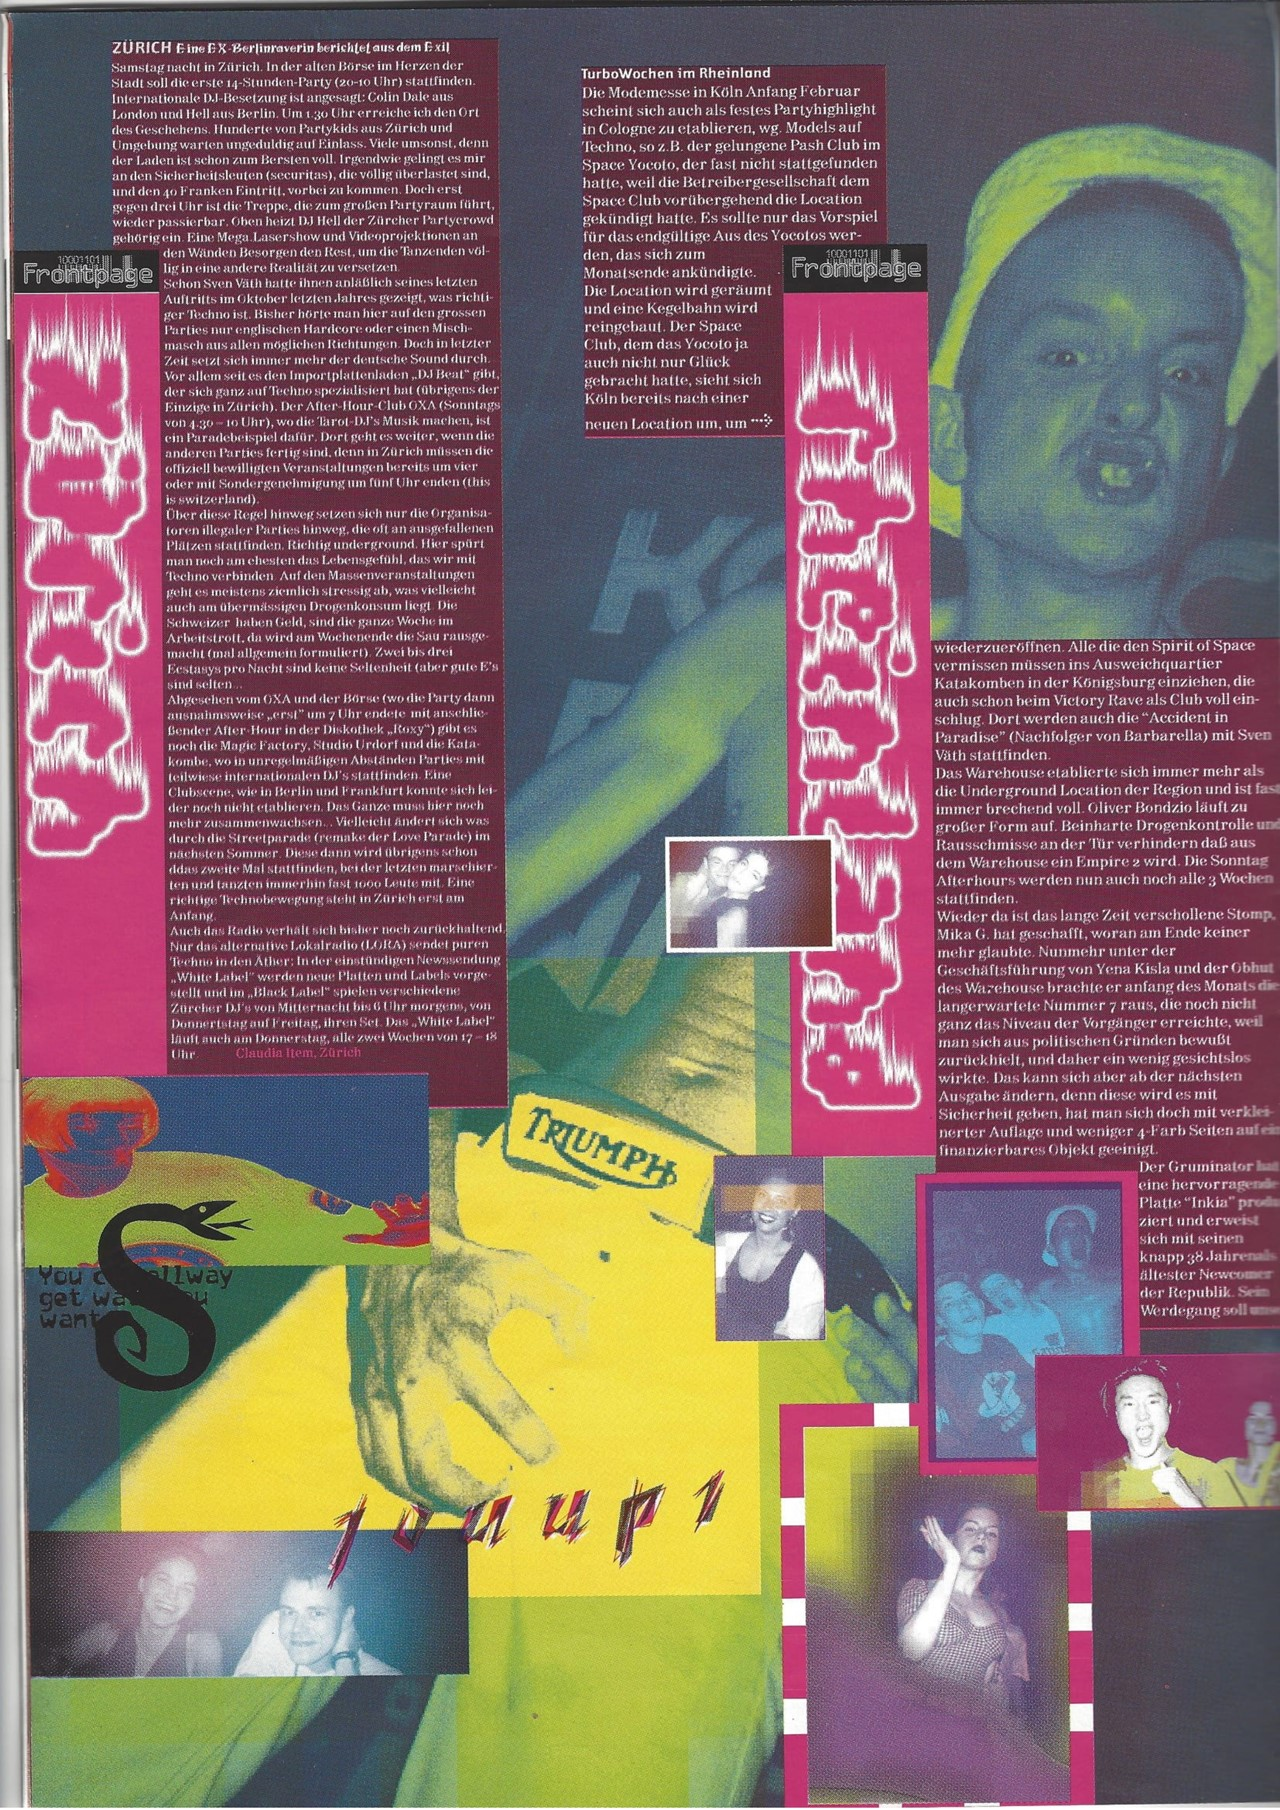 The 90s techno magazine that shaped German rave culture | Dazed